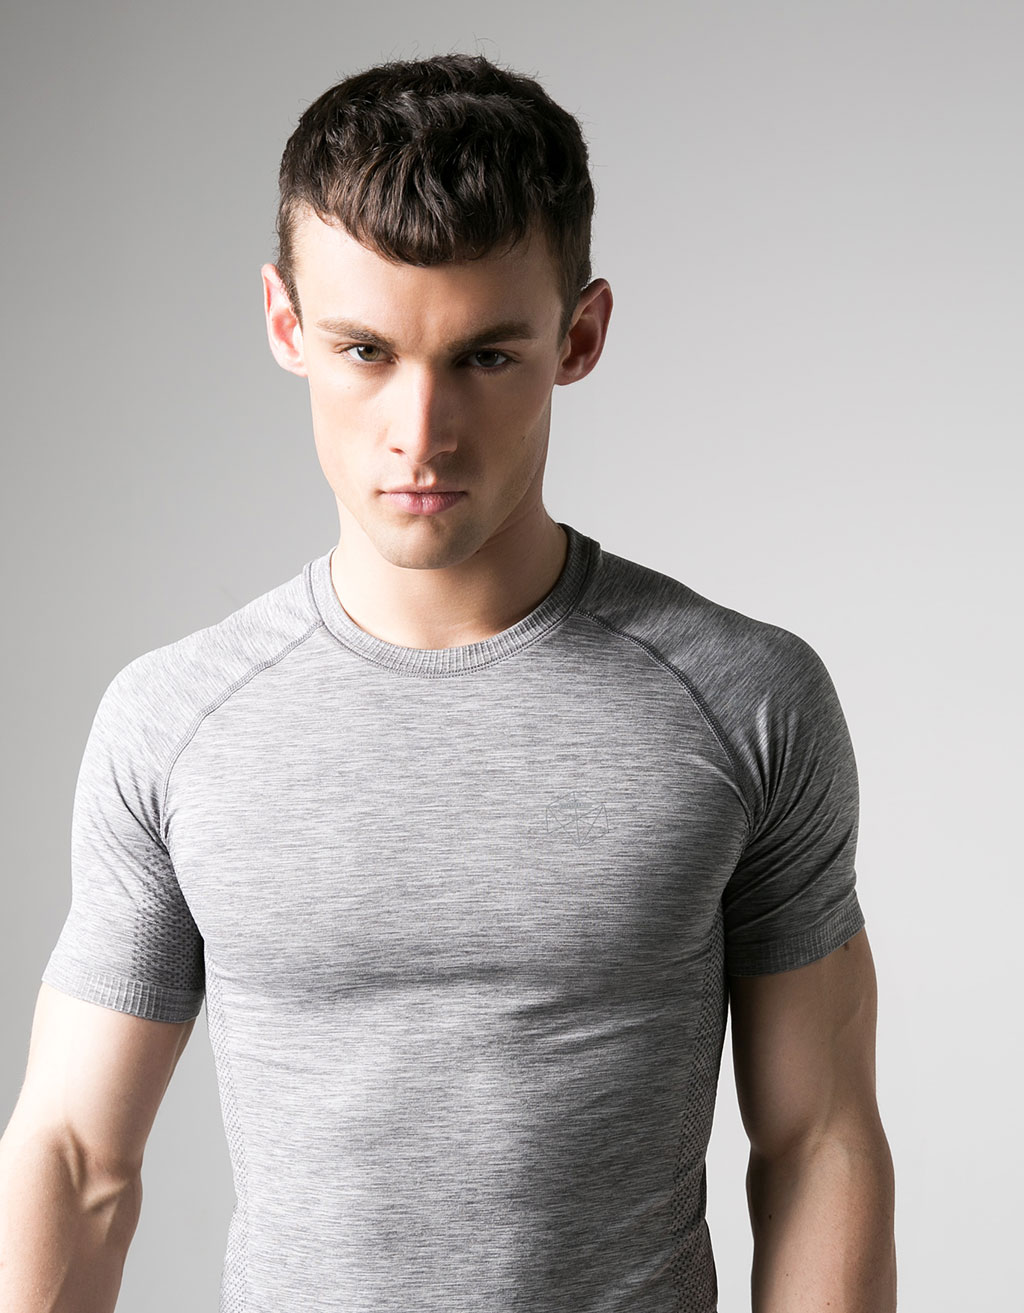 Technical sports top